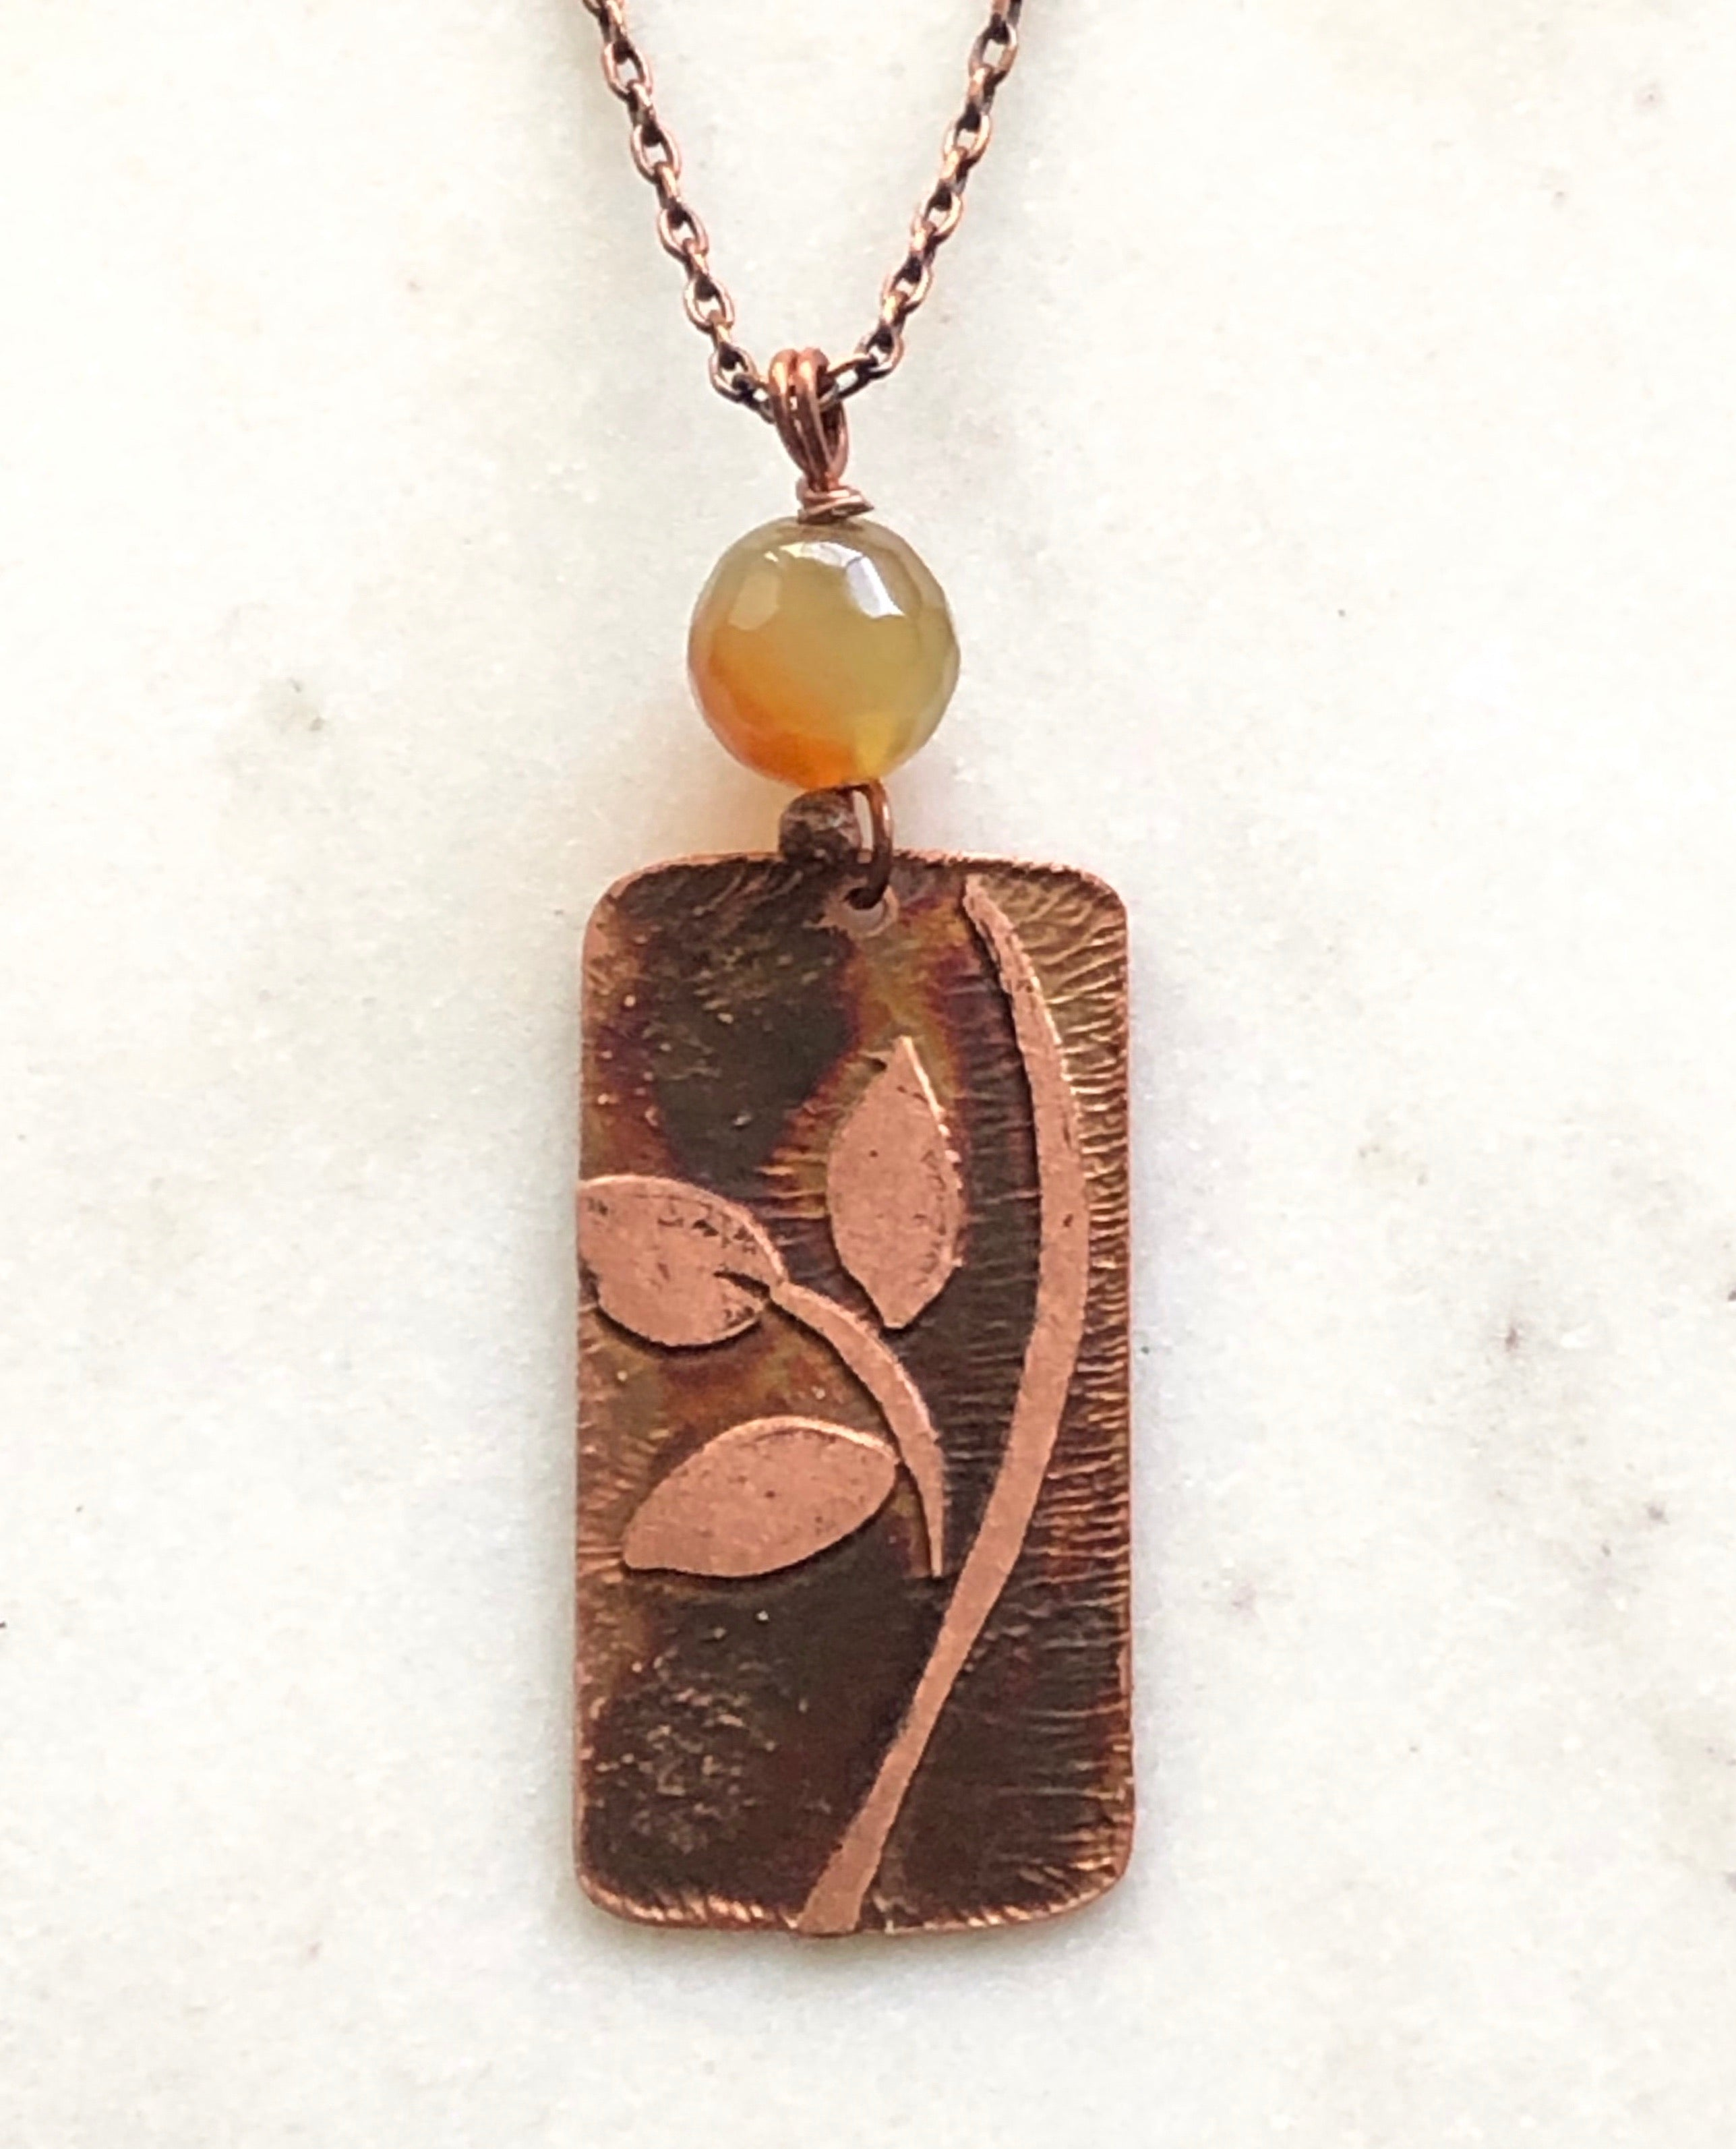 Acid etched copper leaf necklace with agate